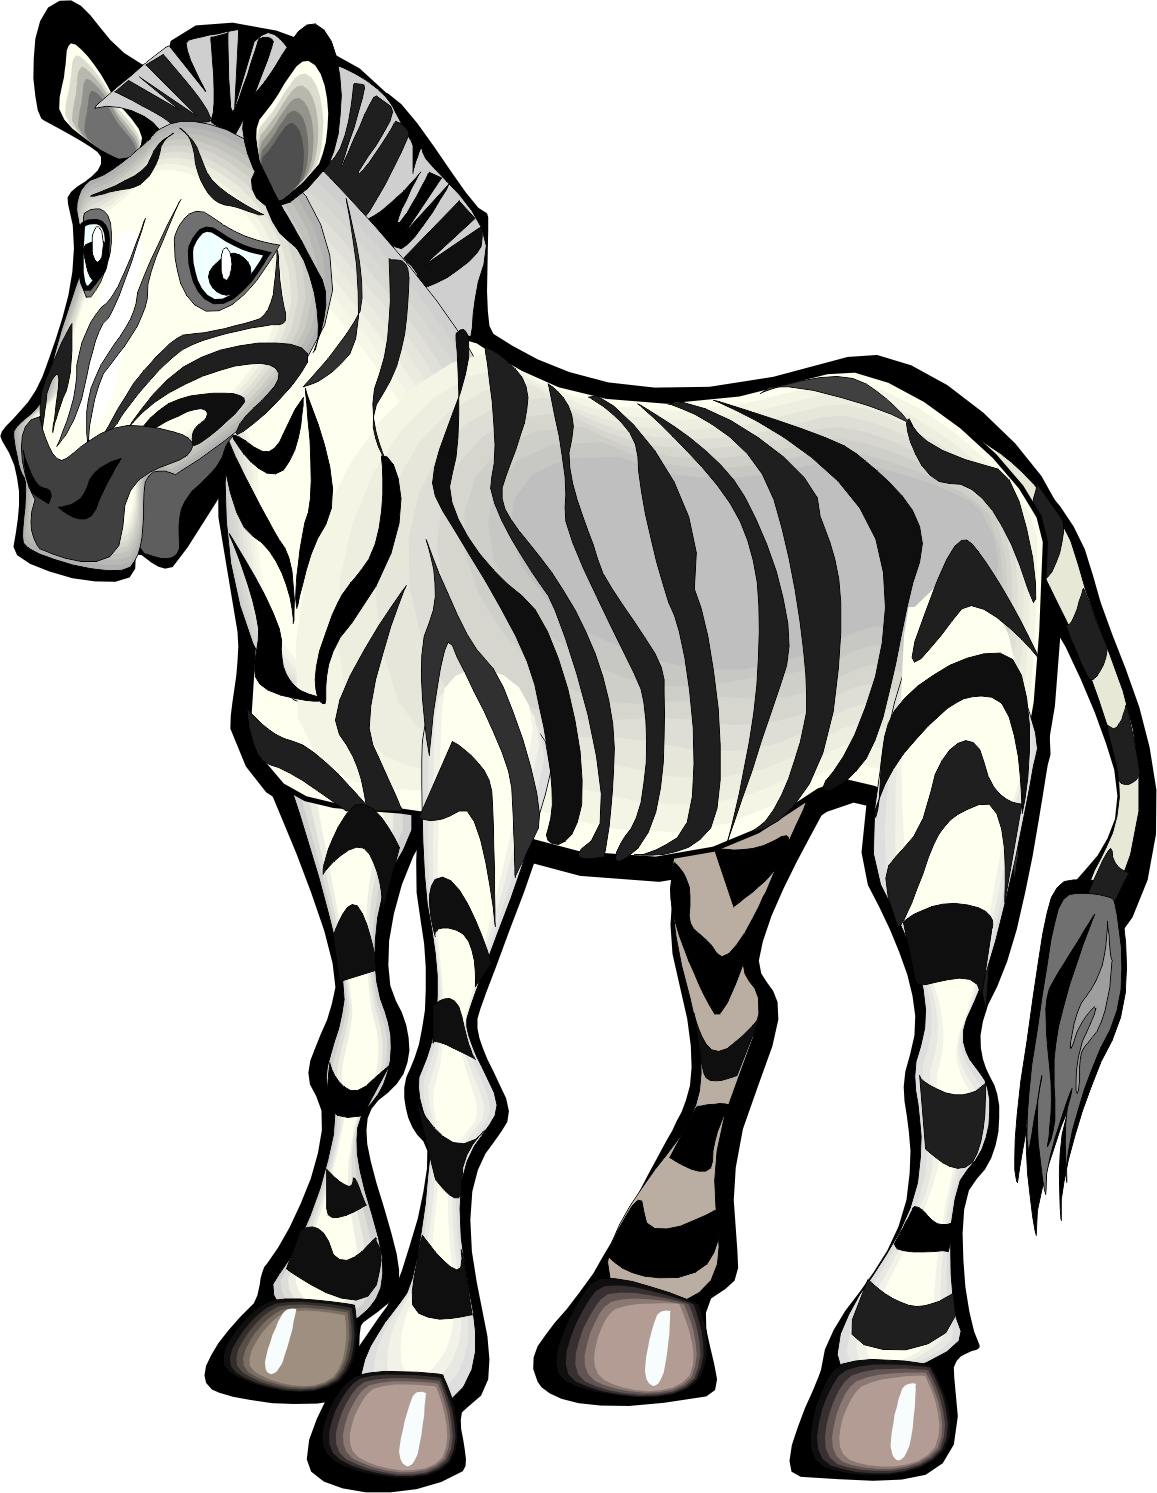 Clipart zebra carton. Free cartoon pictures download